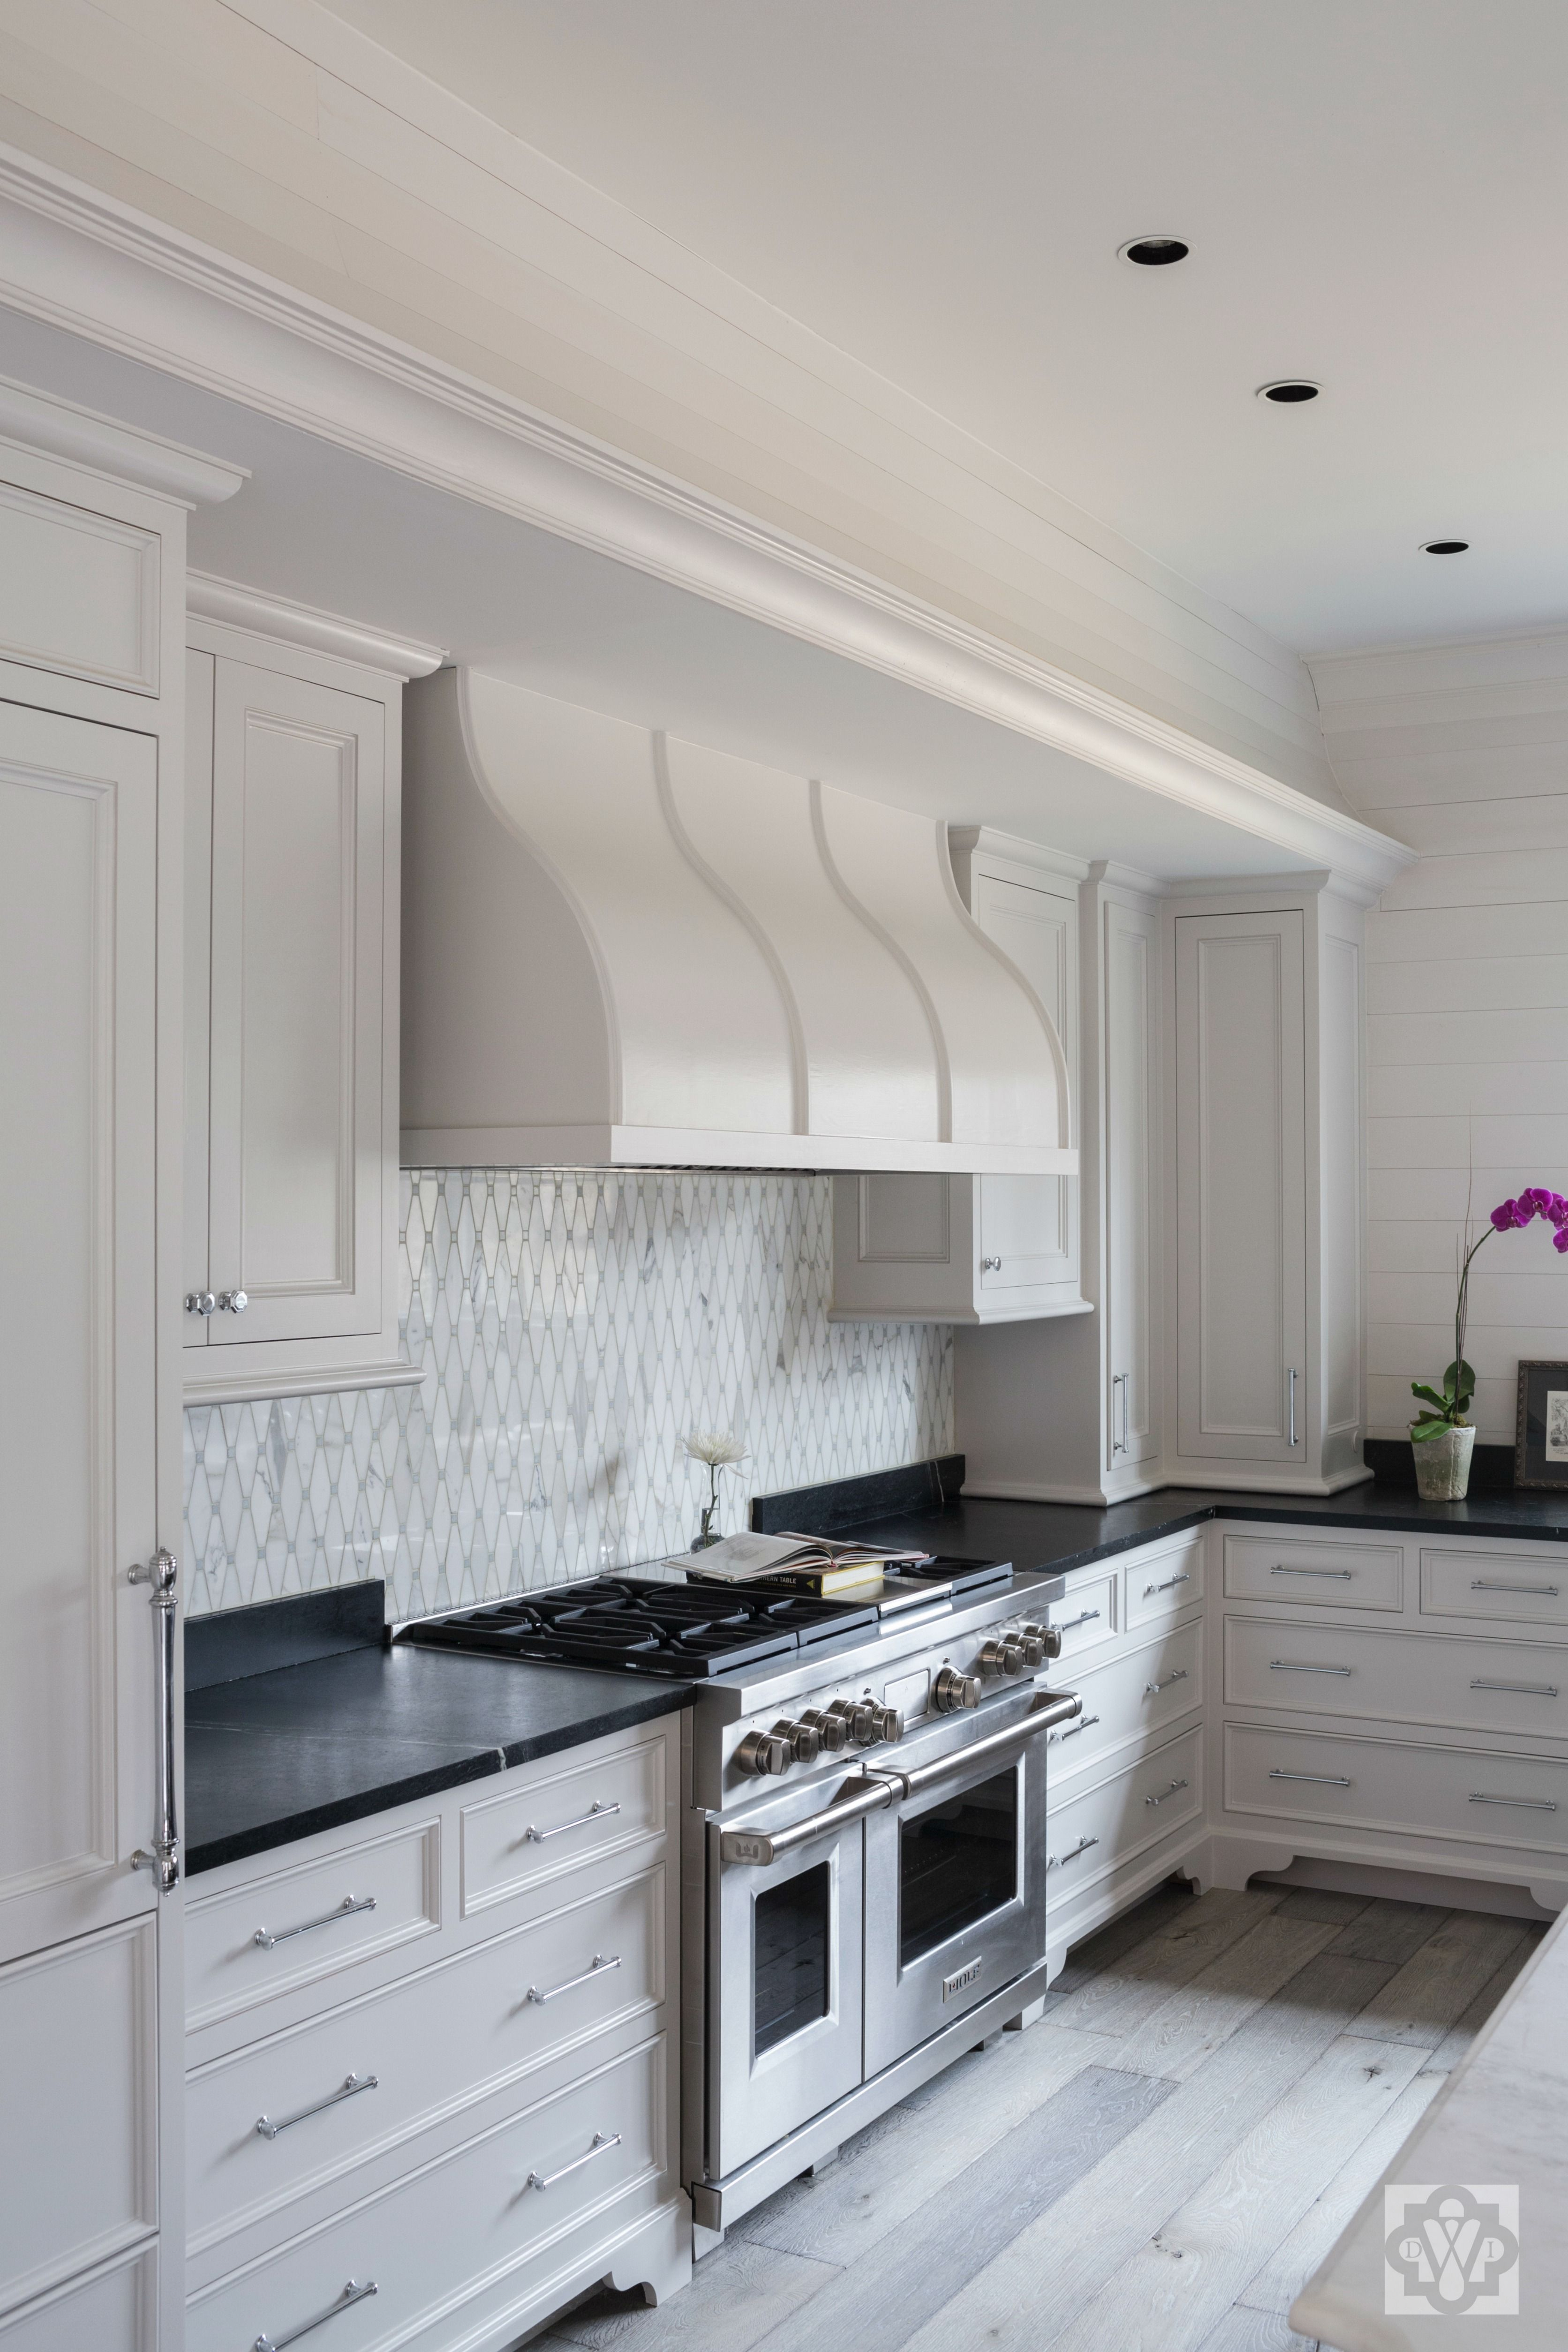 Behind The Scenes Traditional Home Feature Dana Wolter Interiors Kitchen Remodel Kitchen Design Home Kitchens